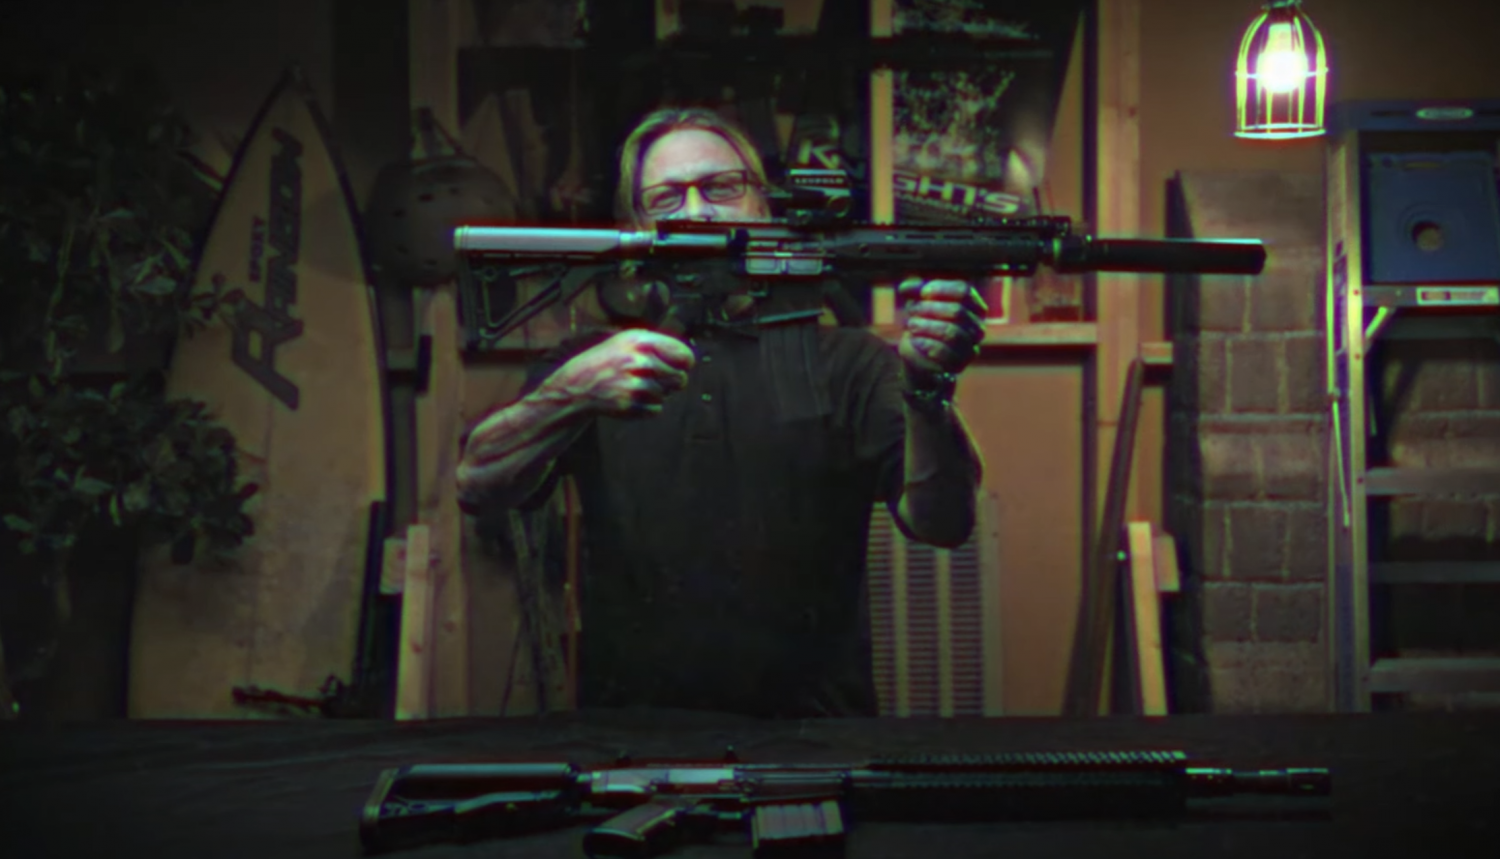 Knights Armament Teases New Variant of SR15 Rifle